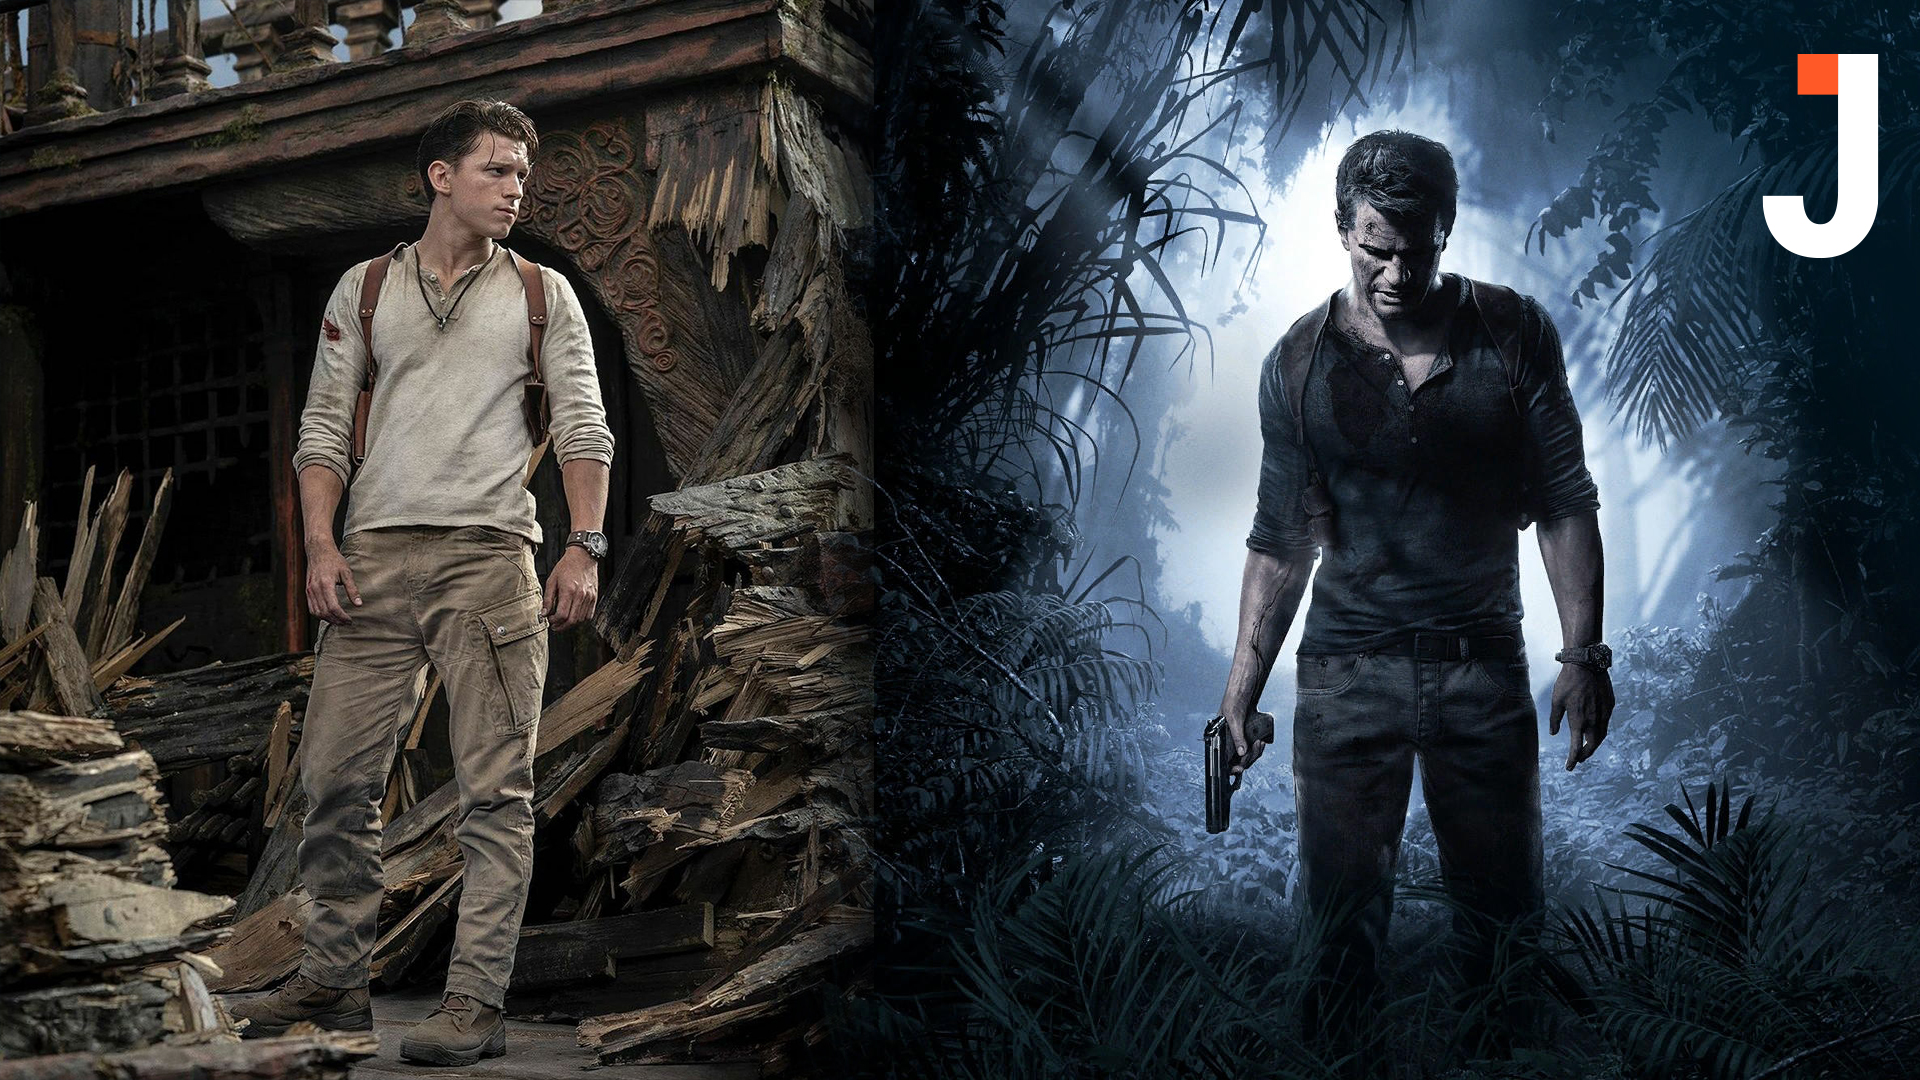 Uncharted: should we wait for the film?